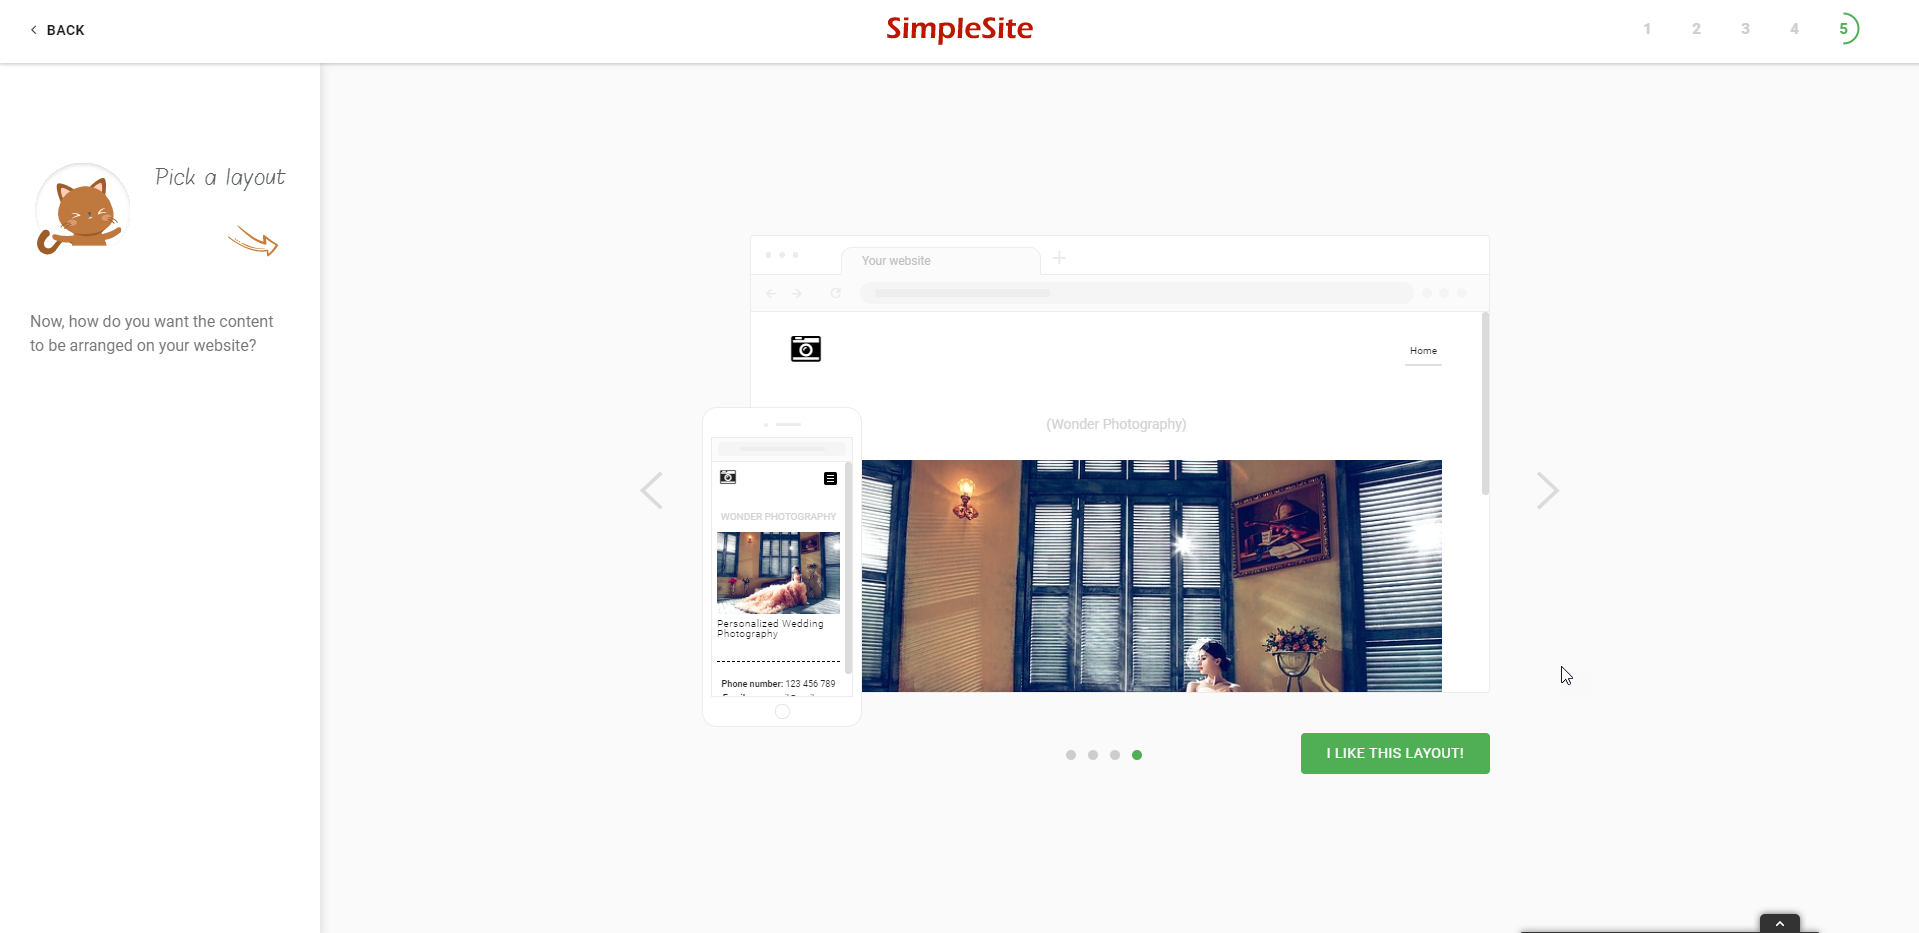 simplesite website layout